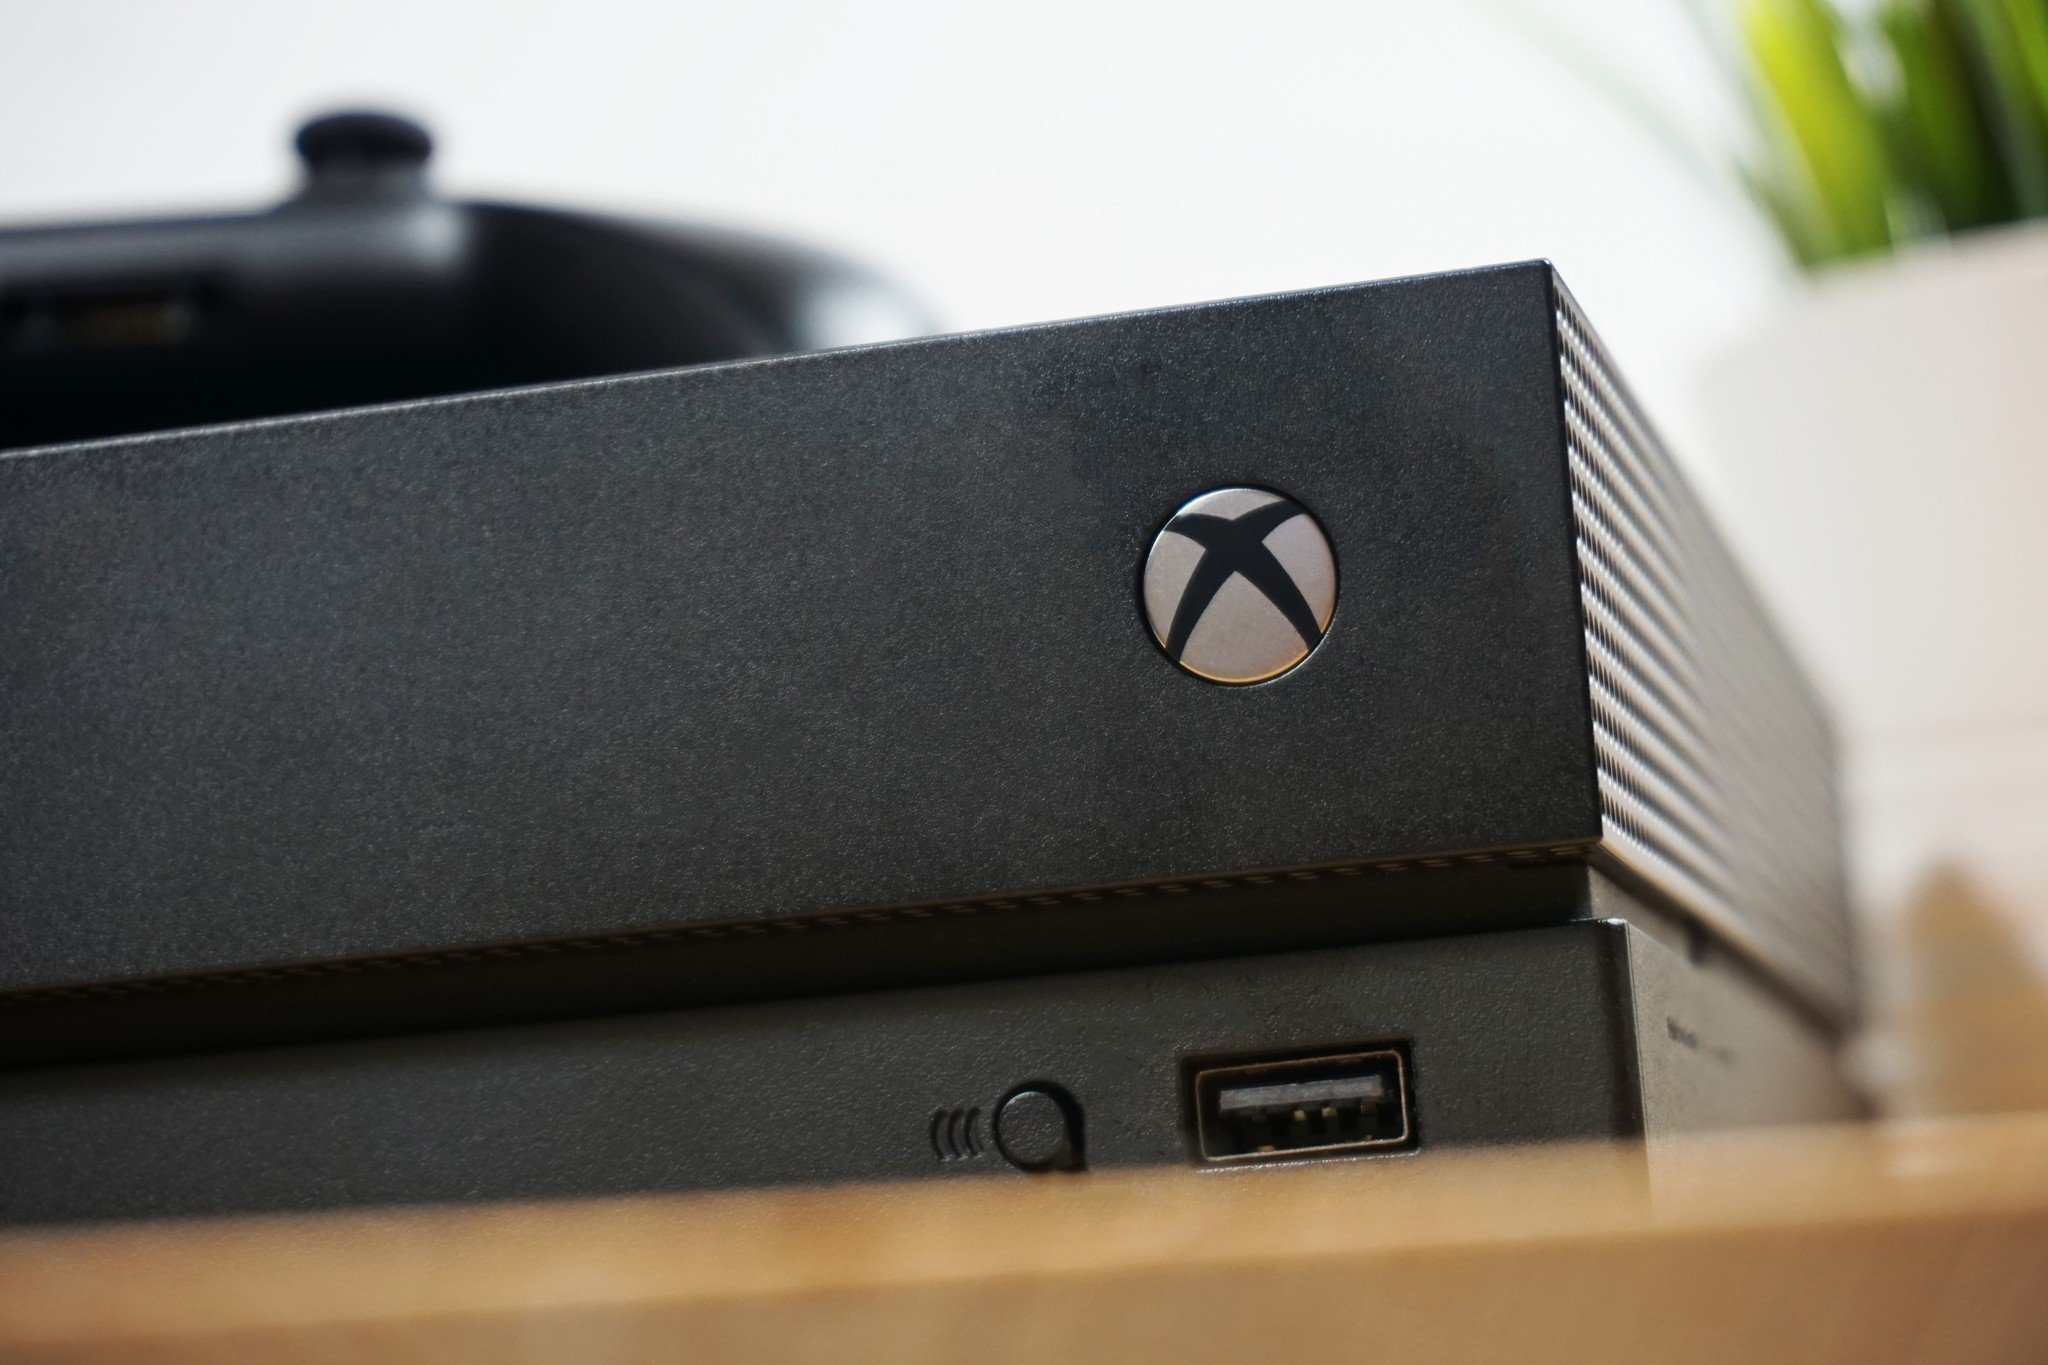 medium resolution of the xbox one cuts out the complexities of gaming with a seamless setup and gaming experience unbox it plug it in walk through a few steps of set up